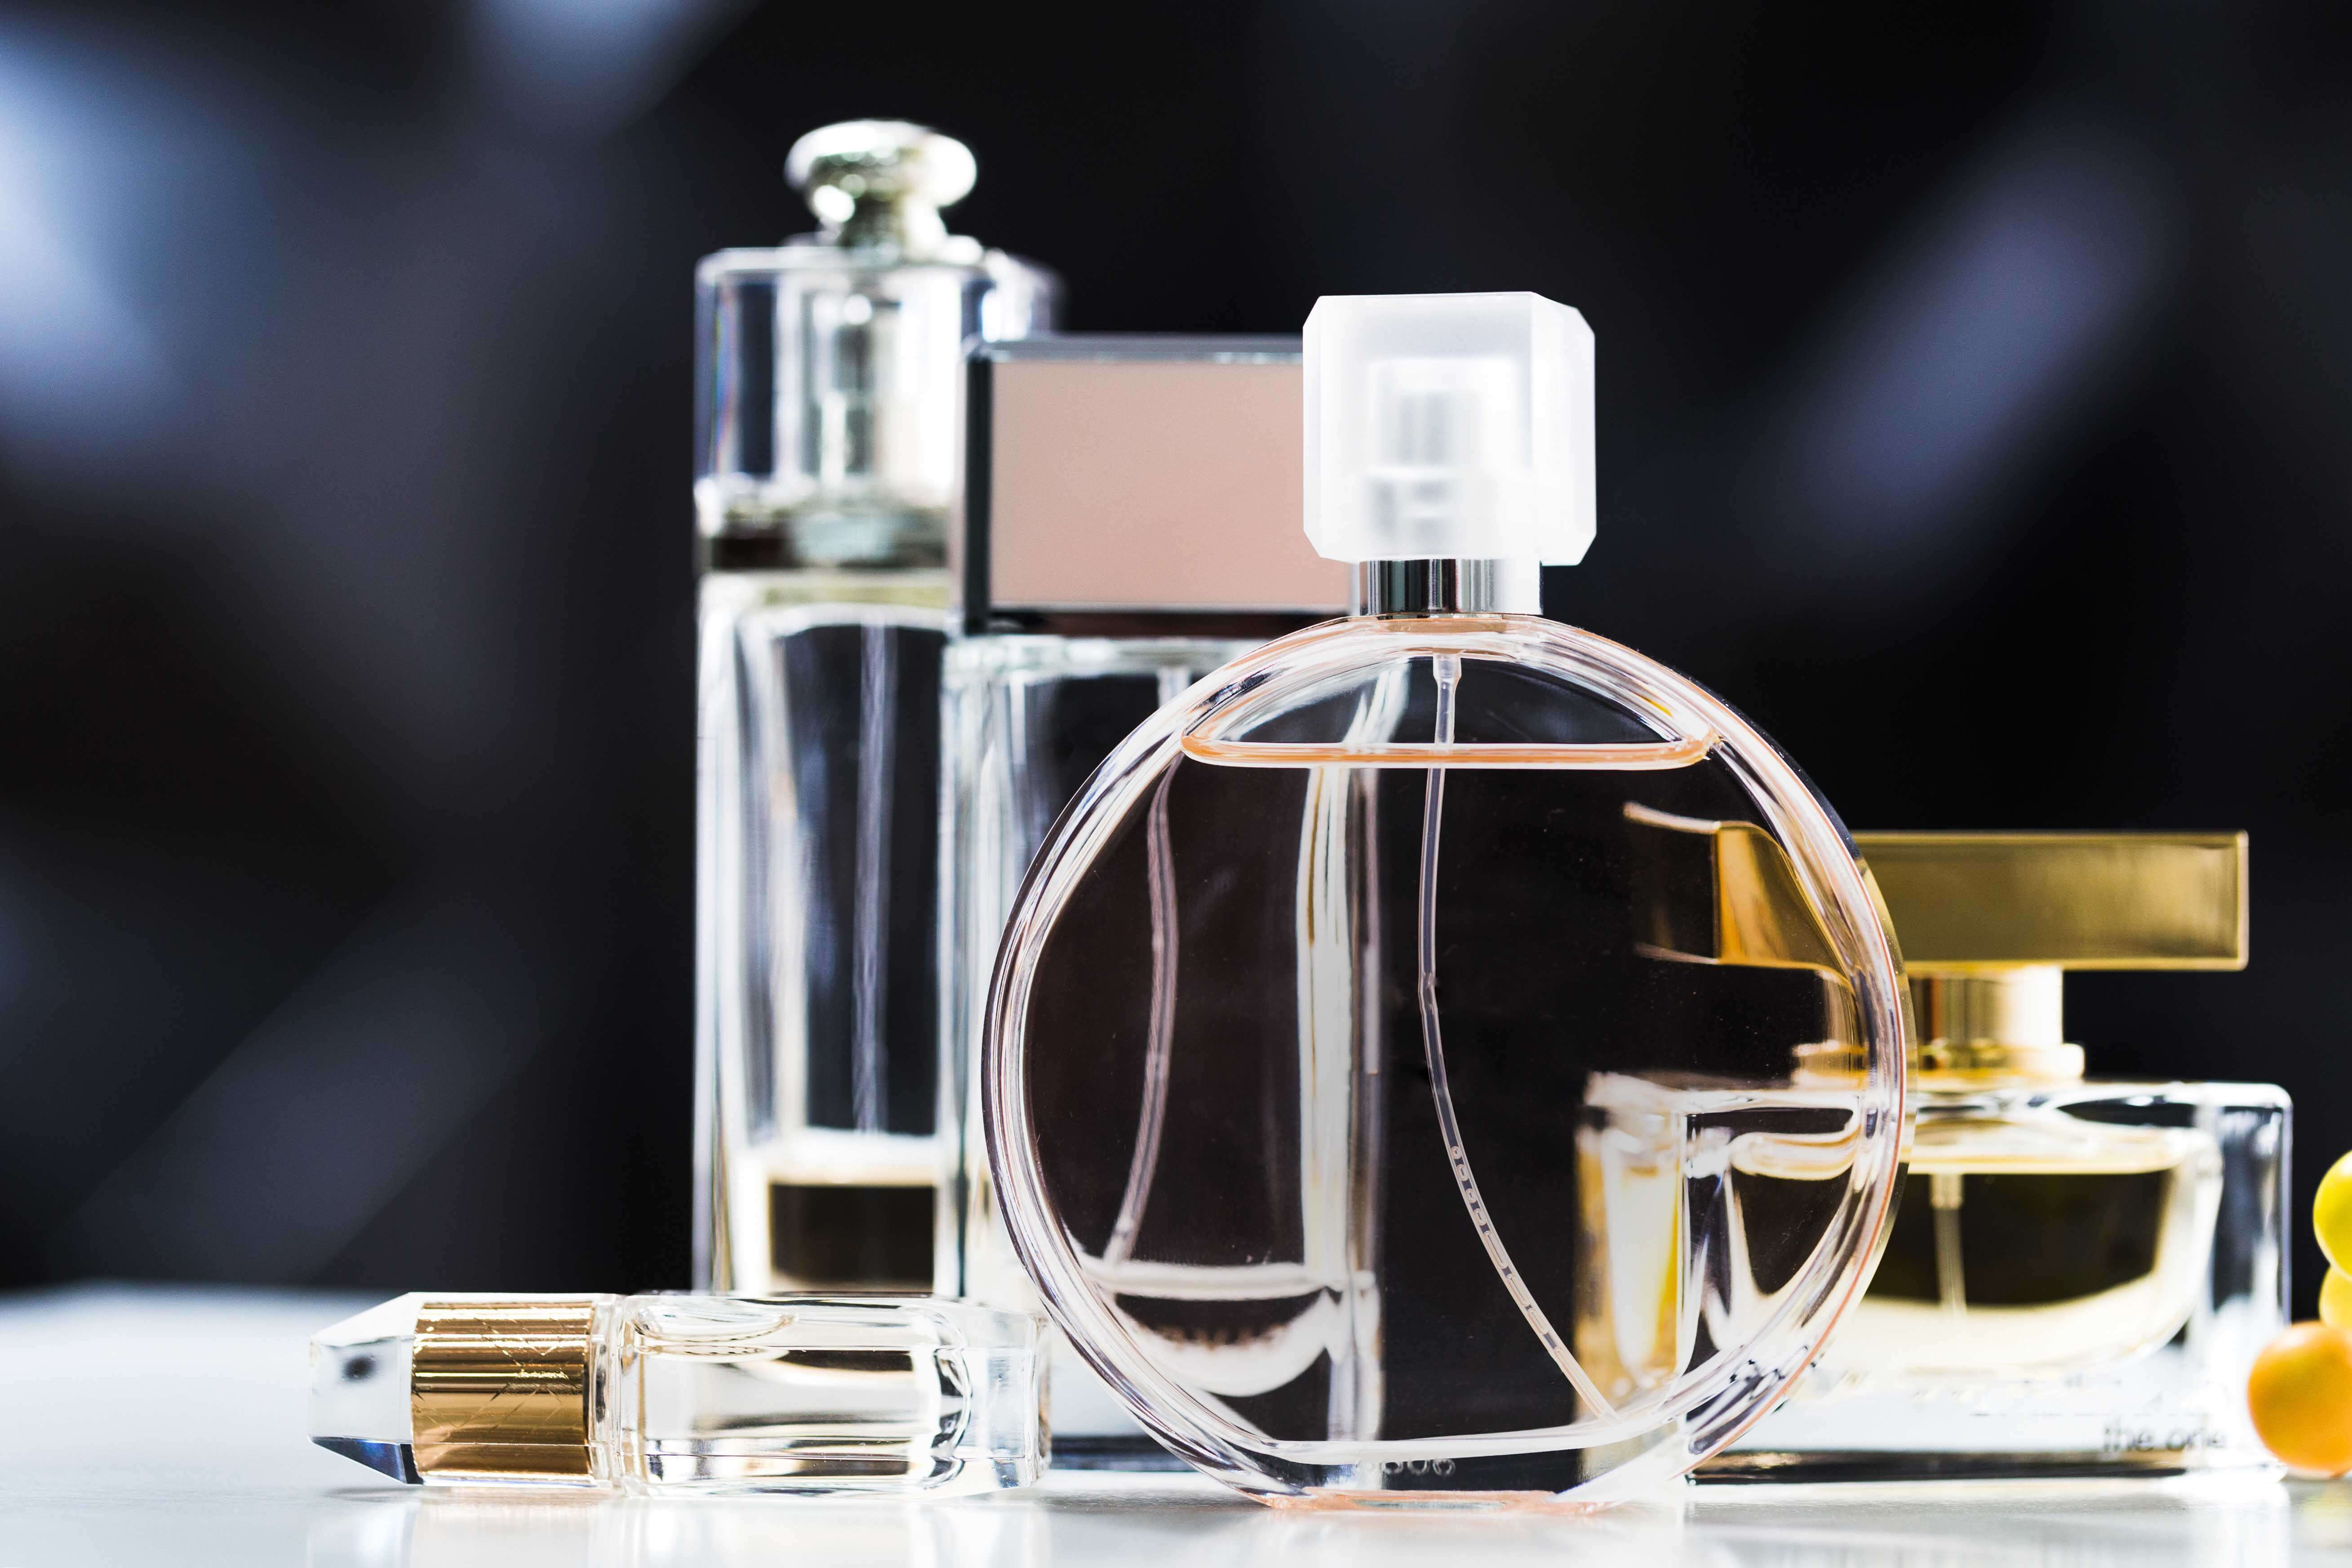 R&D Tax Credits for Beauty & Cosmetics - New Fragrance Blends for Bespoke Perfume